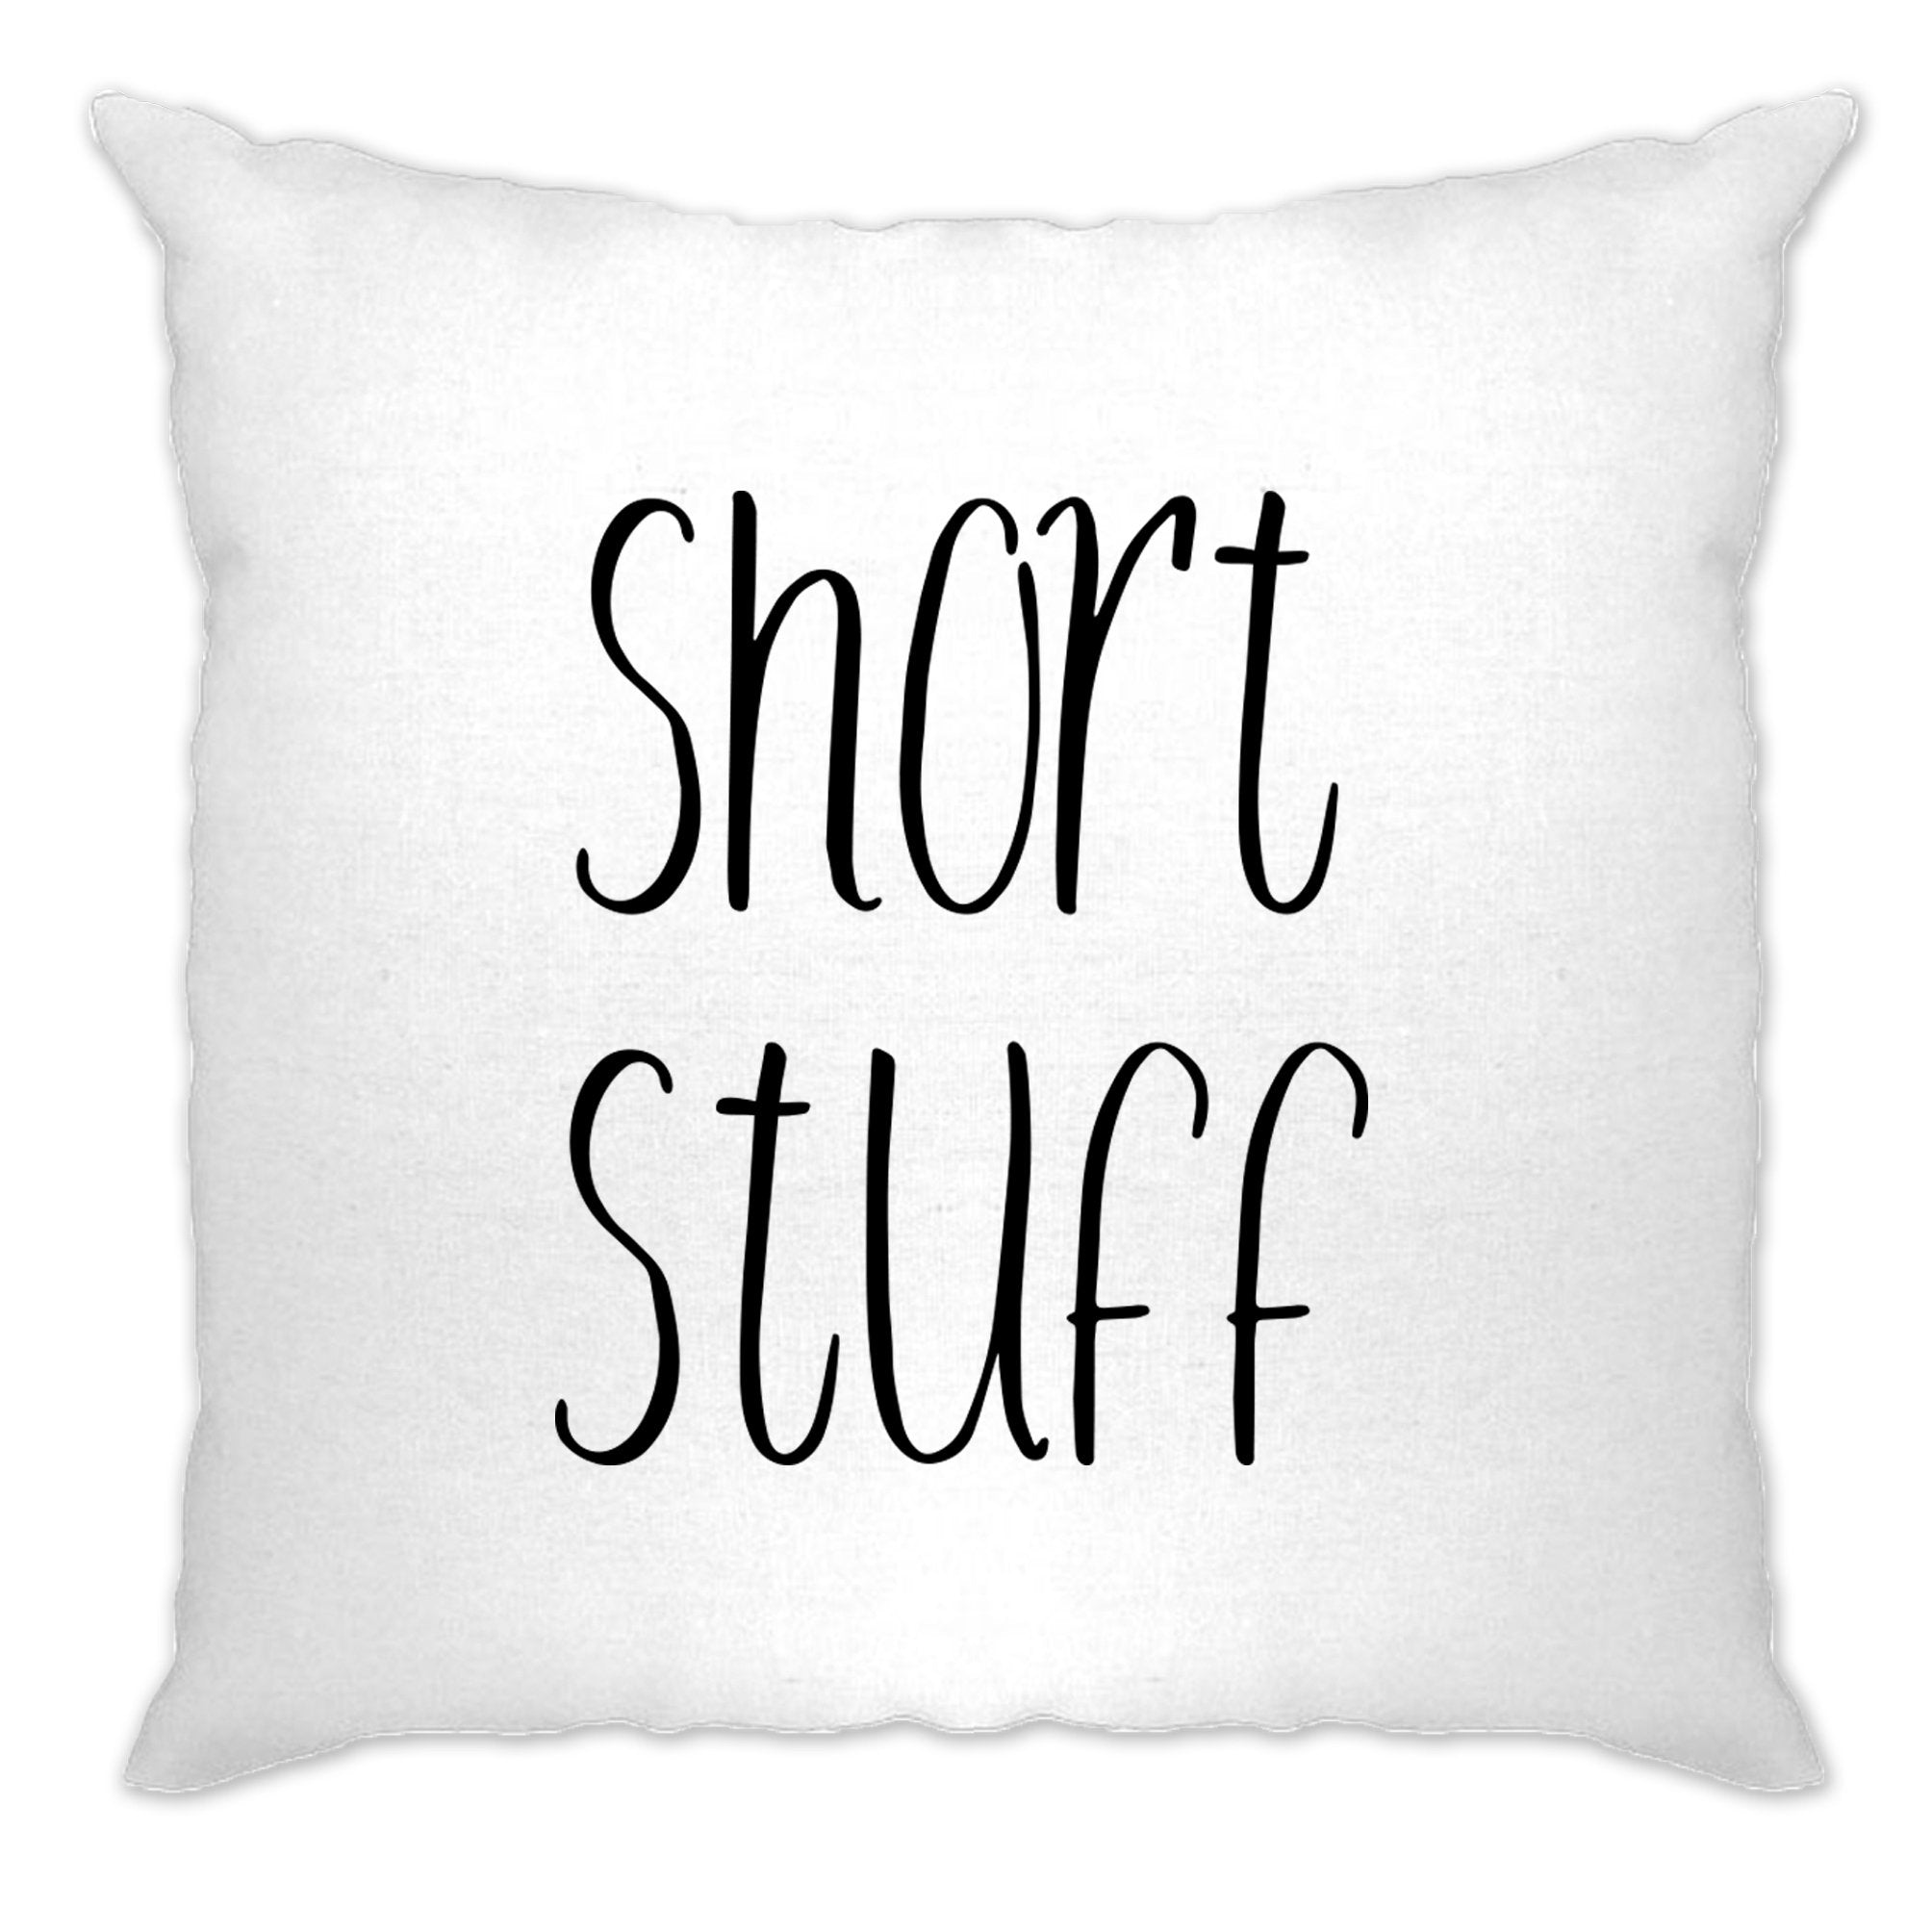 Height Joke Cushion Cover Short Stuff Novelty Slogan